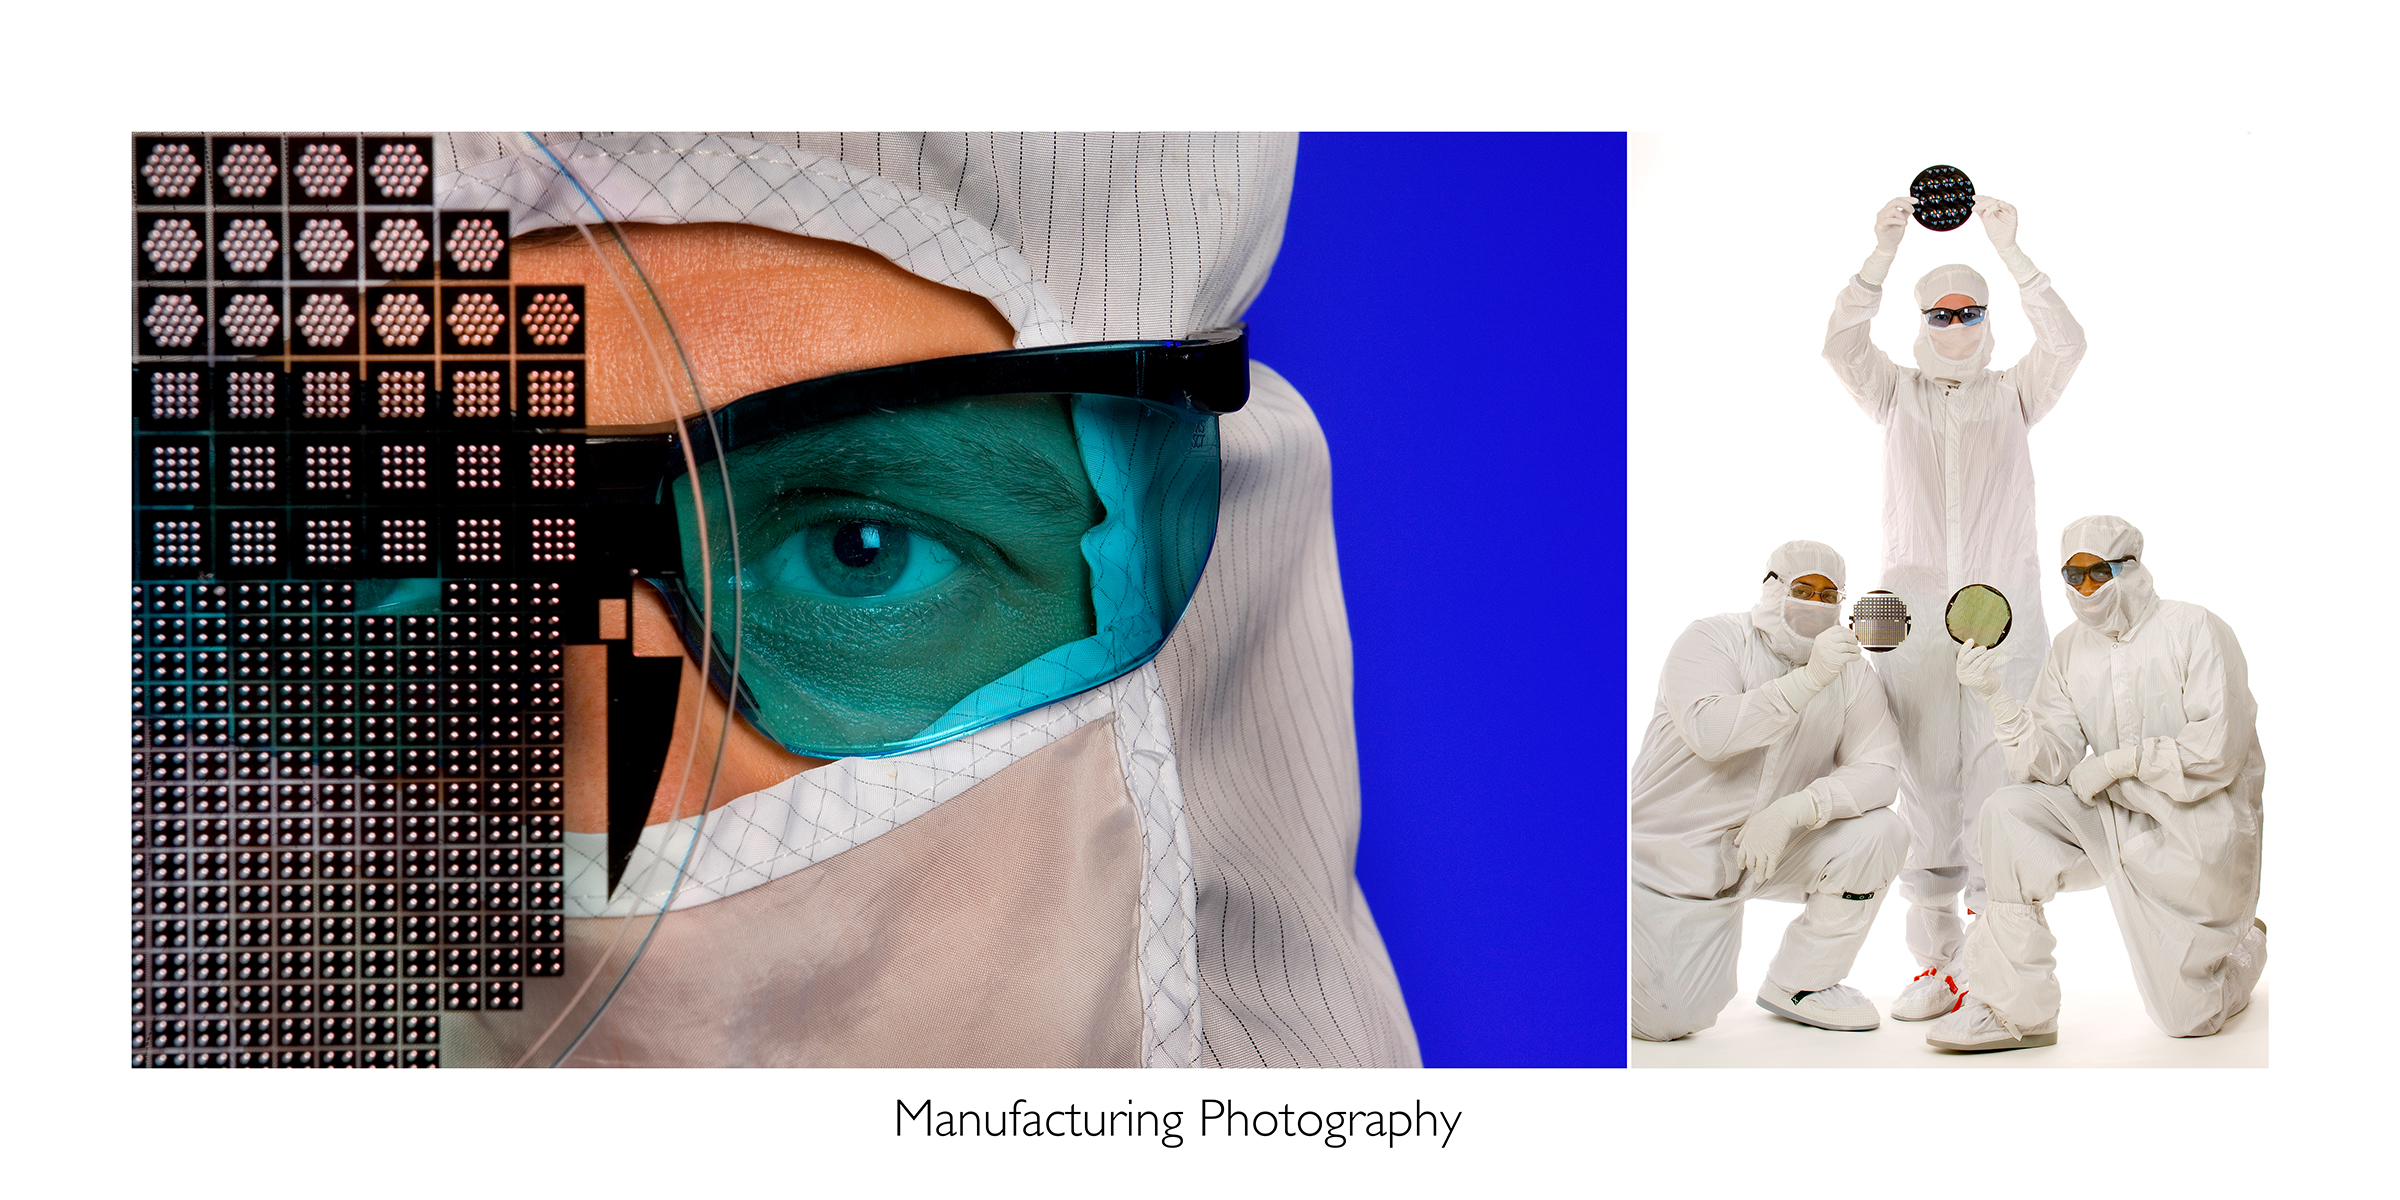 Two photos from a clean room photo shoot placed side by side for illustrative purposes. Left photo is a close up detail shot of an eye looking through a digital wafer. Right photo is of three employees (each covered head to toe with white clothes) holding the wafers they work with.